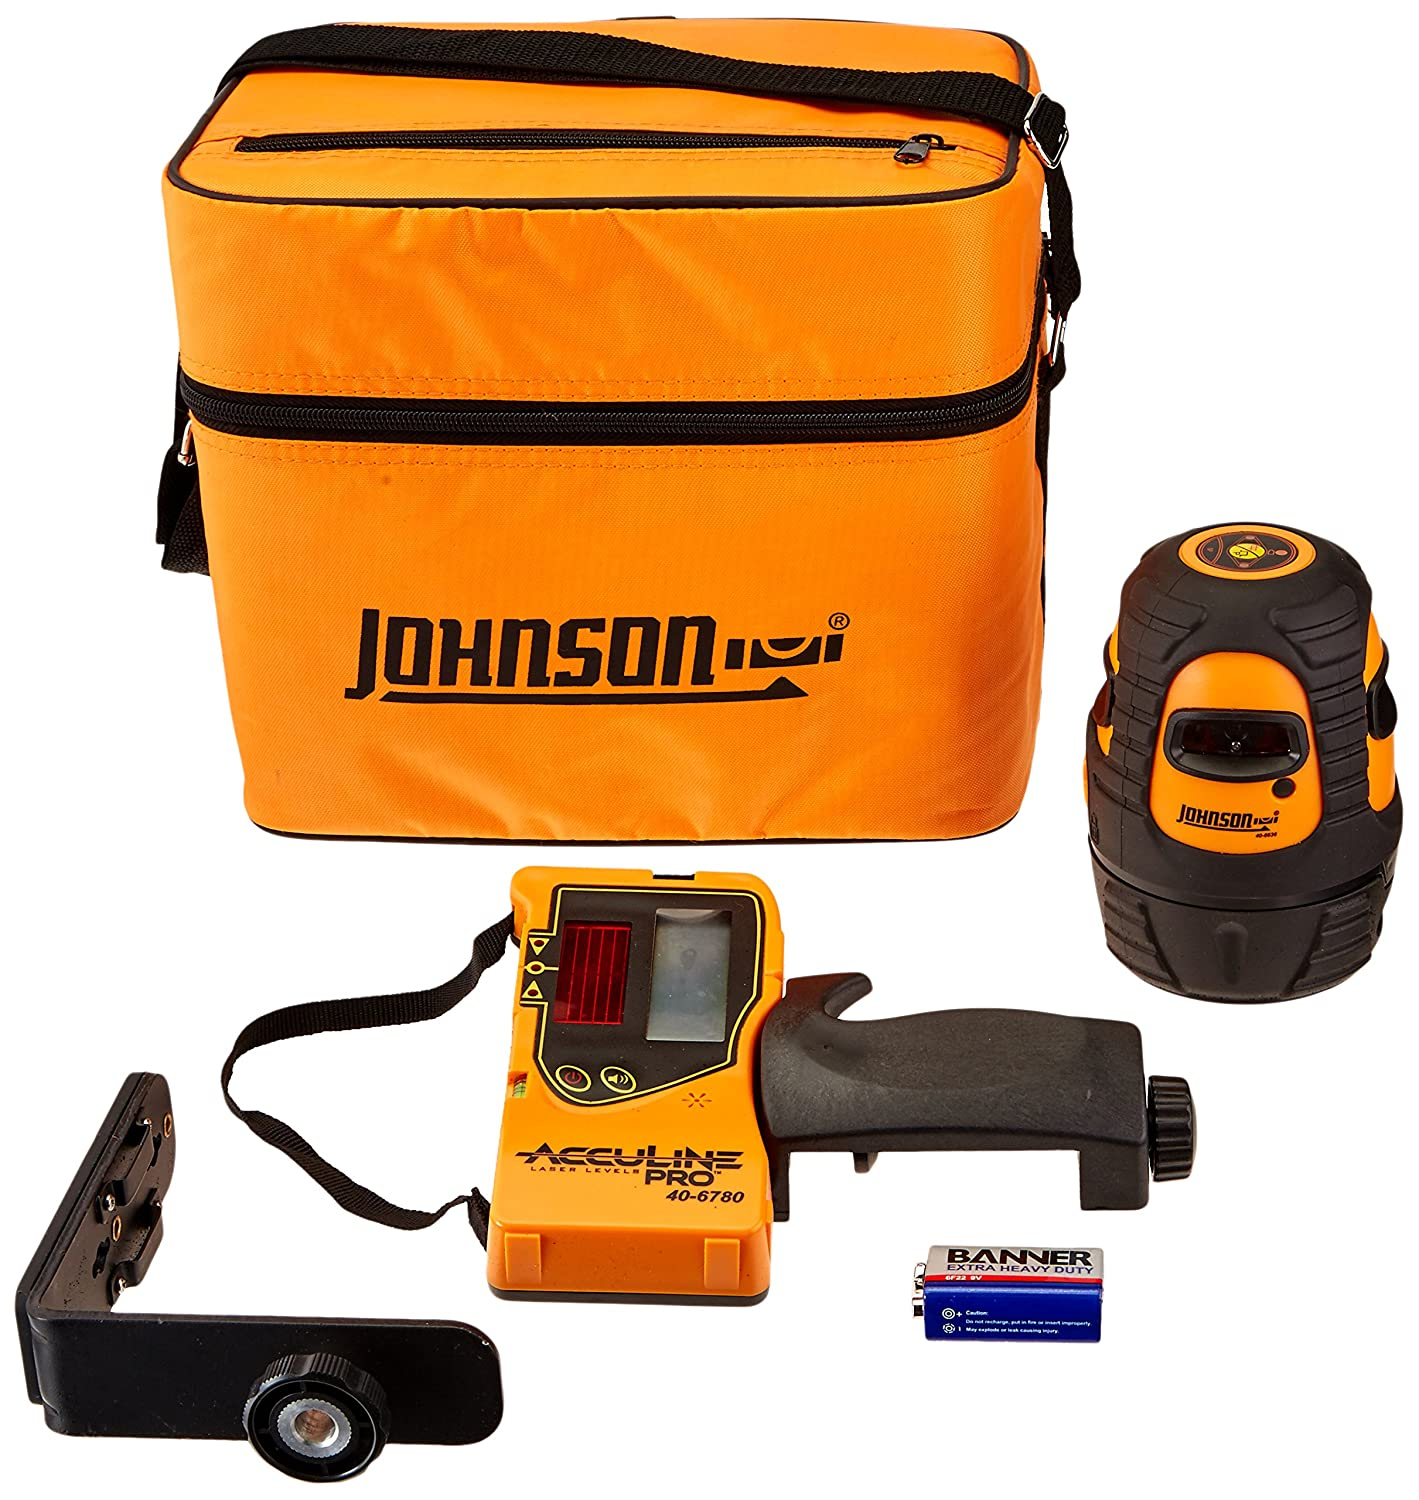 Johnson Level Tool 40 6638 Line Laser